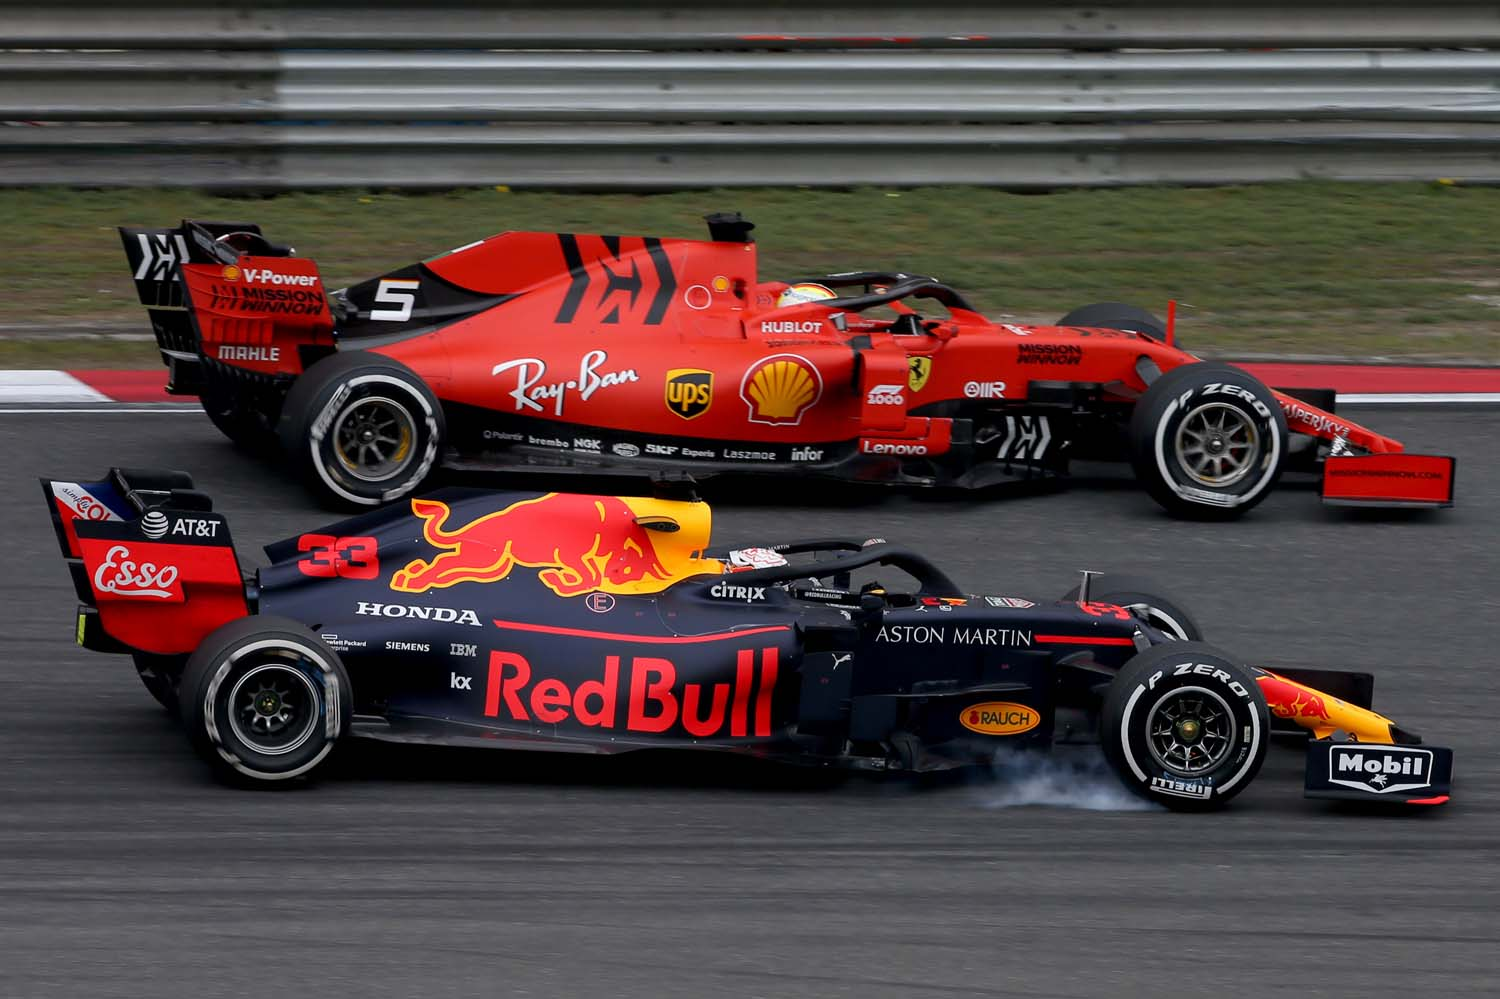 SHANGHAI, CHINA - APRIL 14: Sebastian Vettel of Germany driving the (5) Scuderia Ferrari SF90 and Max Verstappen of the Netherlands driving the (33) Aston Martin Red Bull Racing RB15 on track during the F1 Grand Prix of China at Shanghai International Circuit on April 14, 2019 in Shanghai, China. (Photo by Charles Coates/Getty Images) // Getty Images / Red Bull Content Pool  // AP-1Z1F4WAA52111 // Usage for editorial use only // Please go to www.redbullcontentpool.com for further information. // overtake